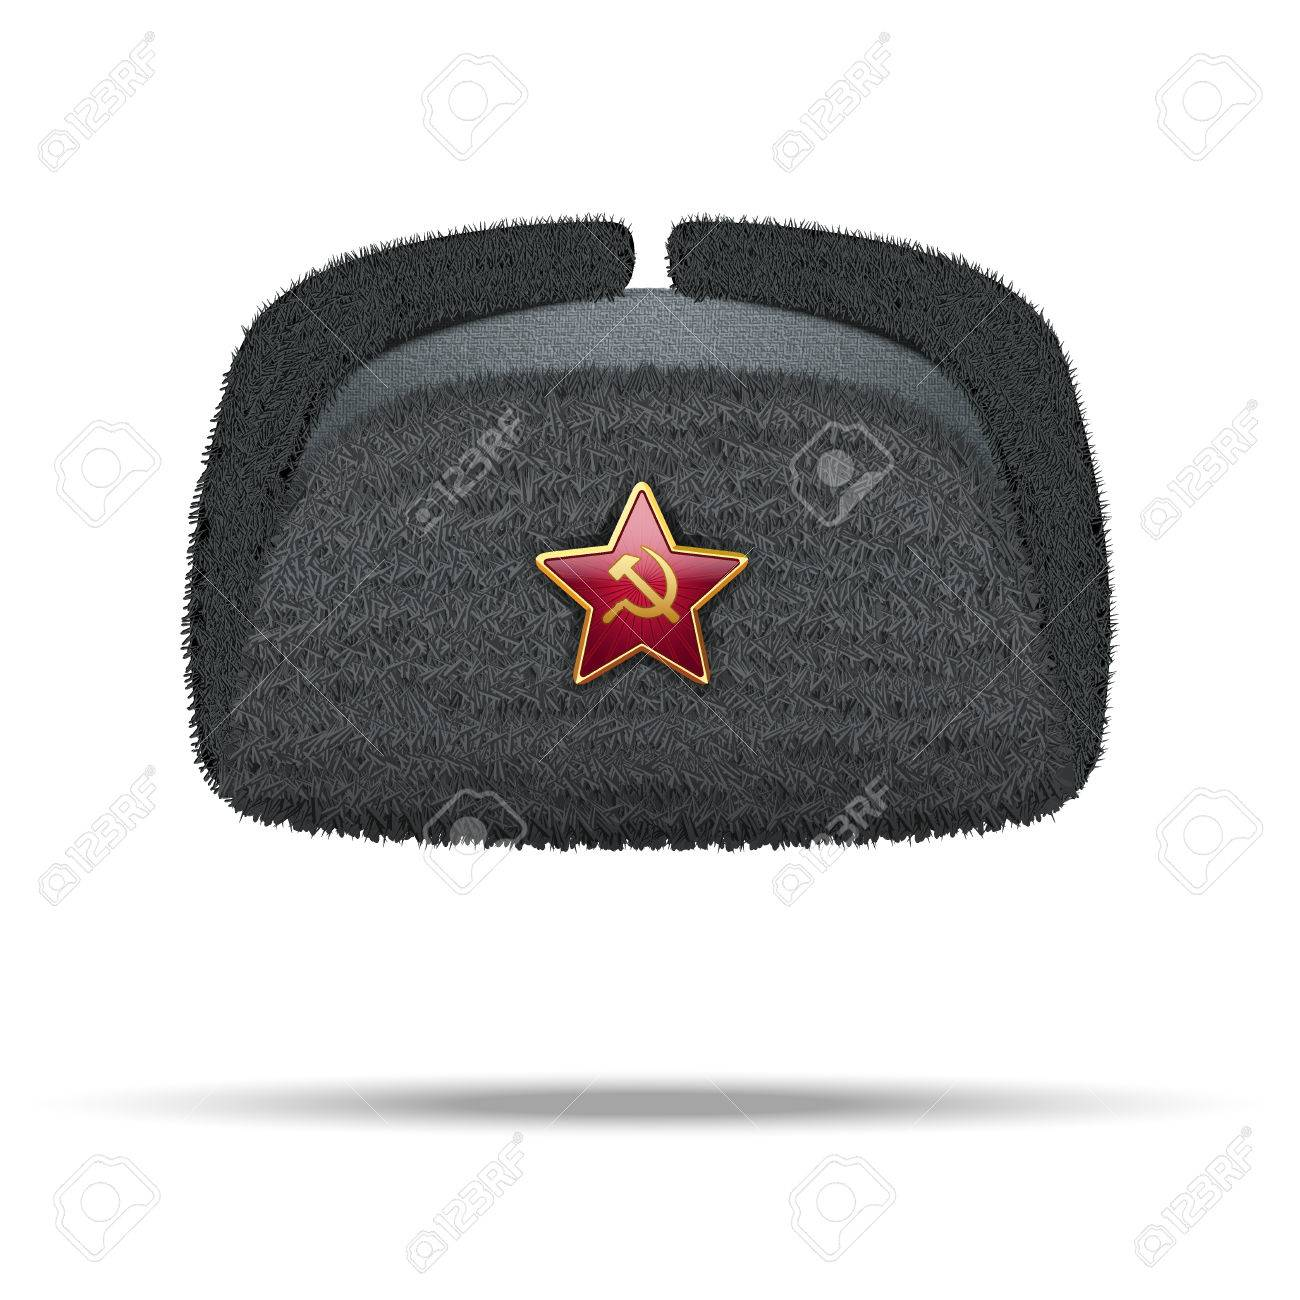 542f3c058fc Russian black fur winter hat ushanka with red star Illustration isolated on  white background. Stock